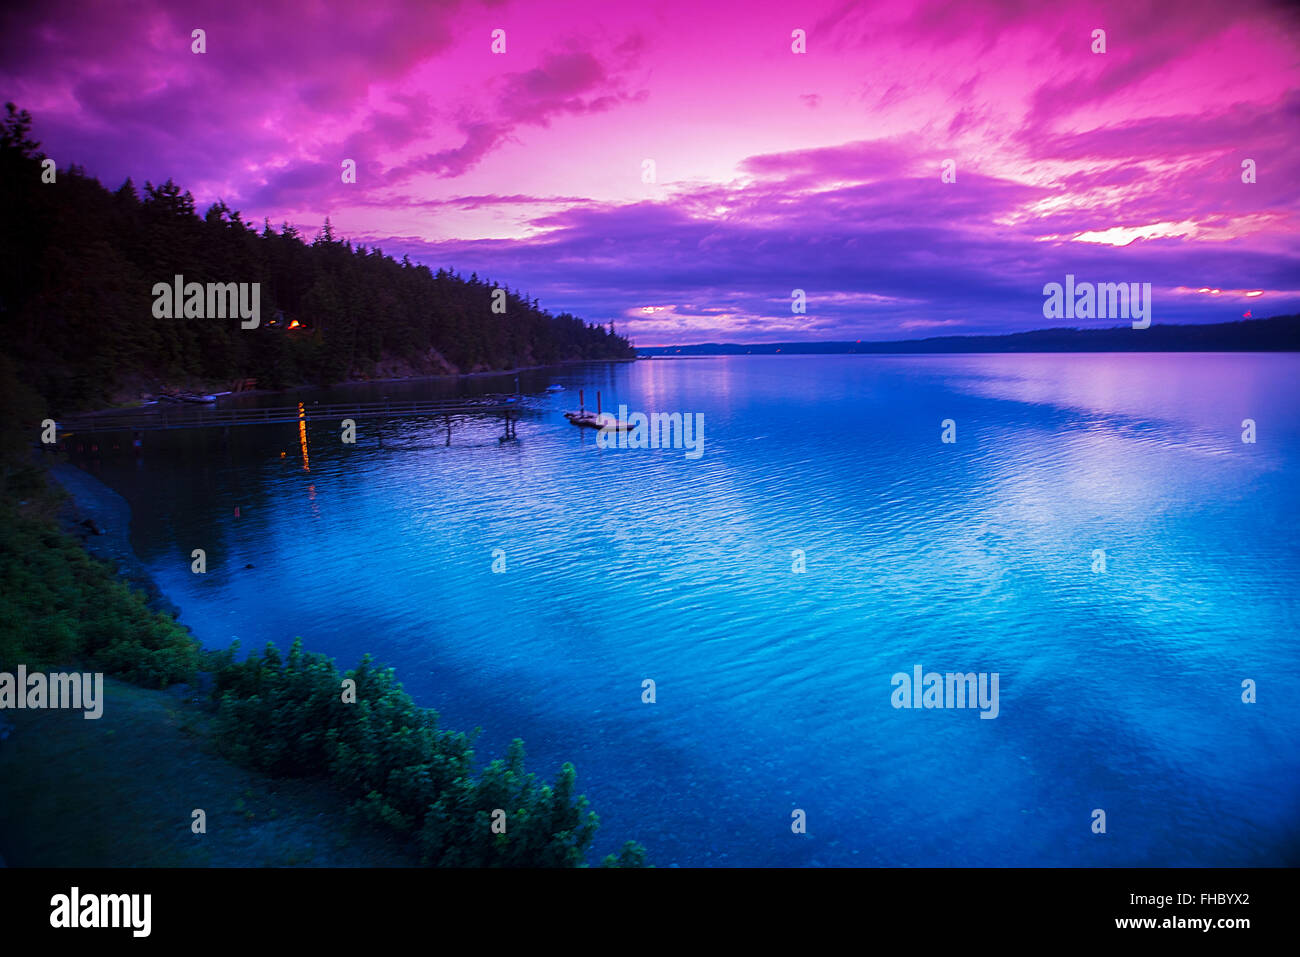 Red And Blue Sunrise Over Discovery Bay Washington Early Morning Stock Photo Alamy